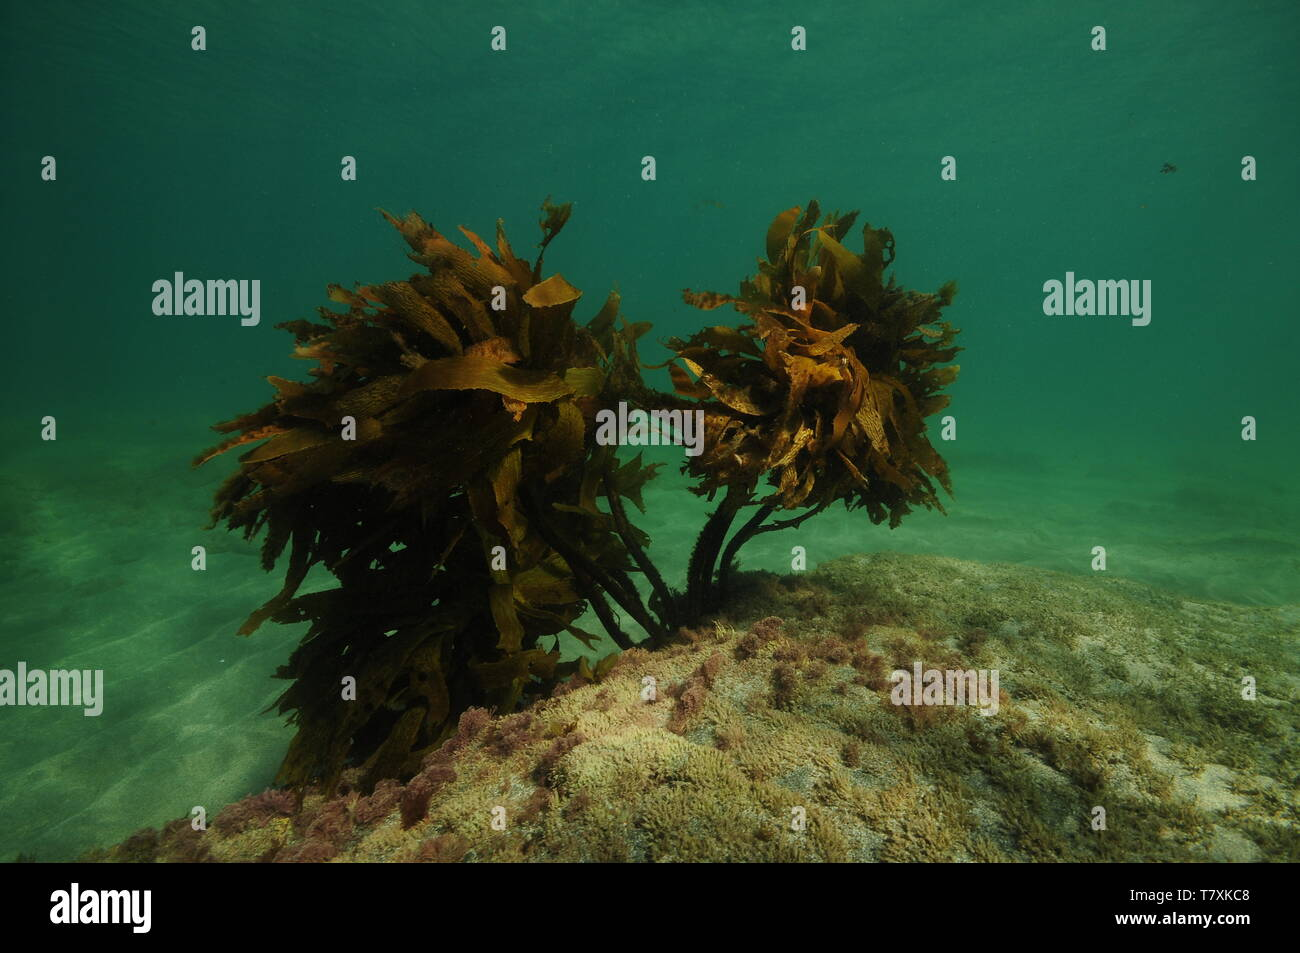 Lonely bush of brown seaweed Ecklonia radiata growing from flat rocky ledge. - Stock Image